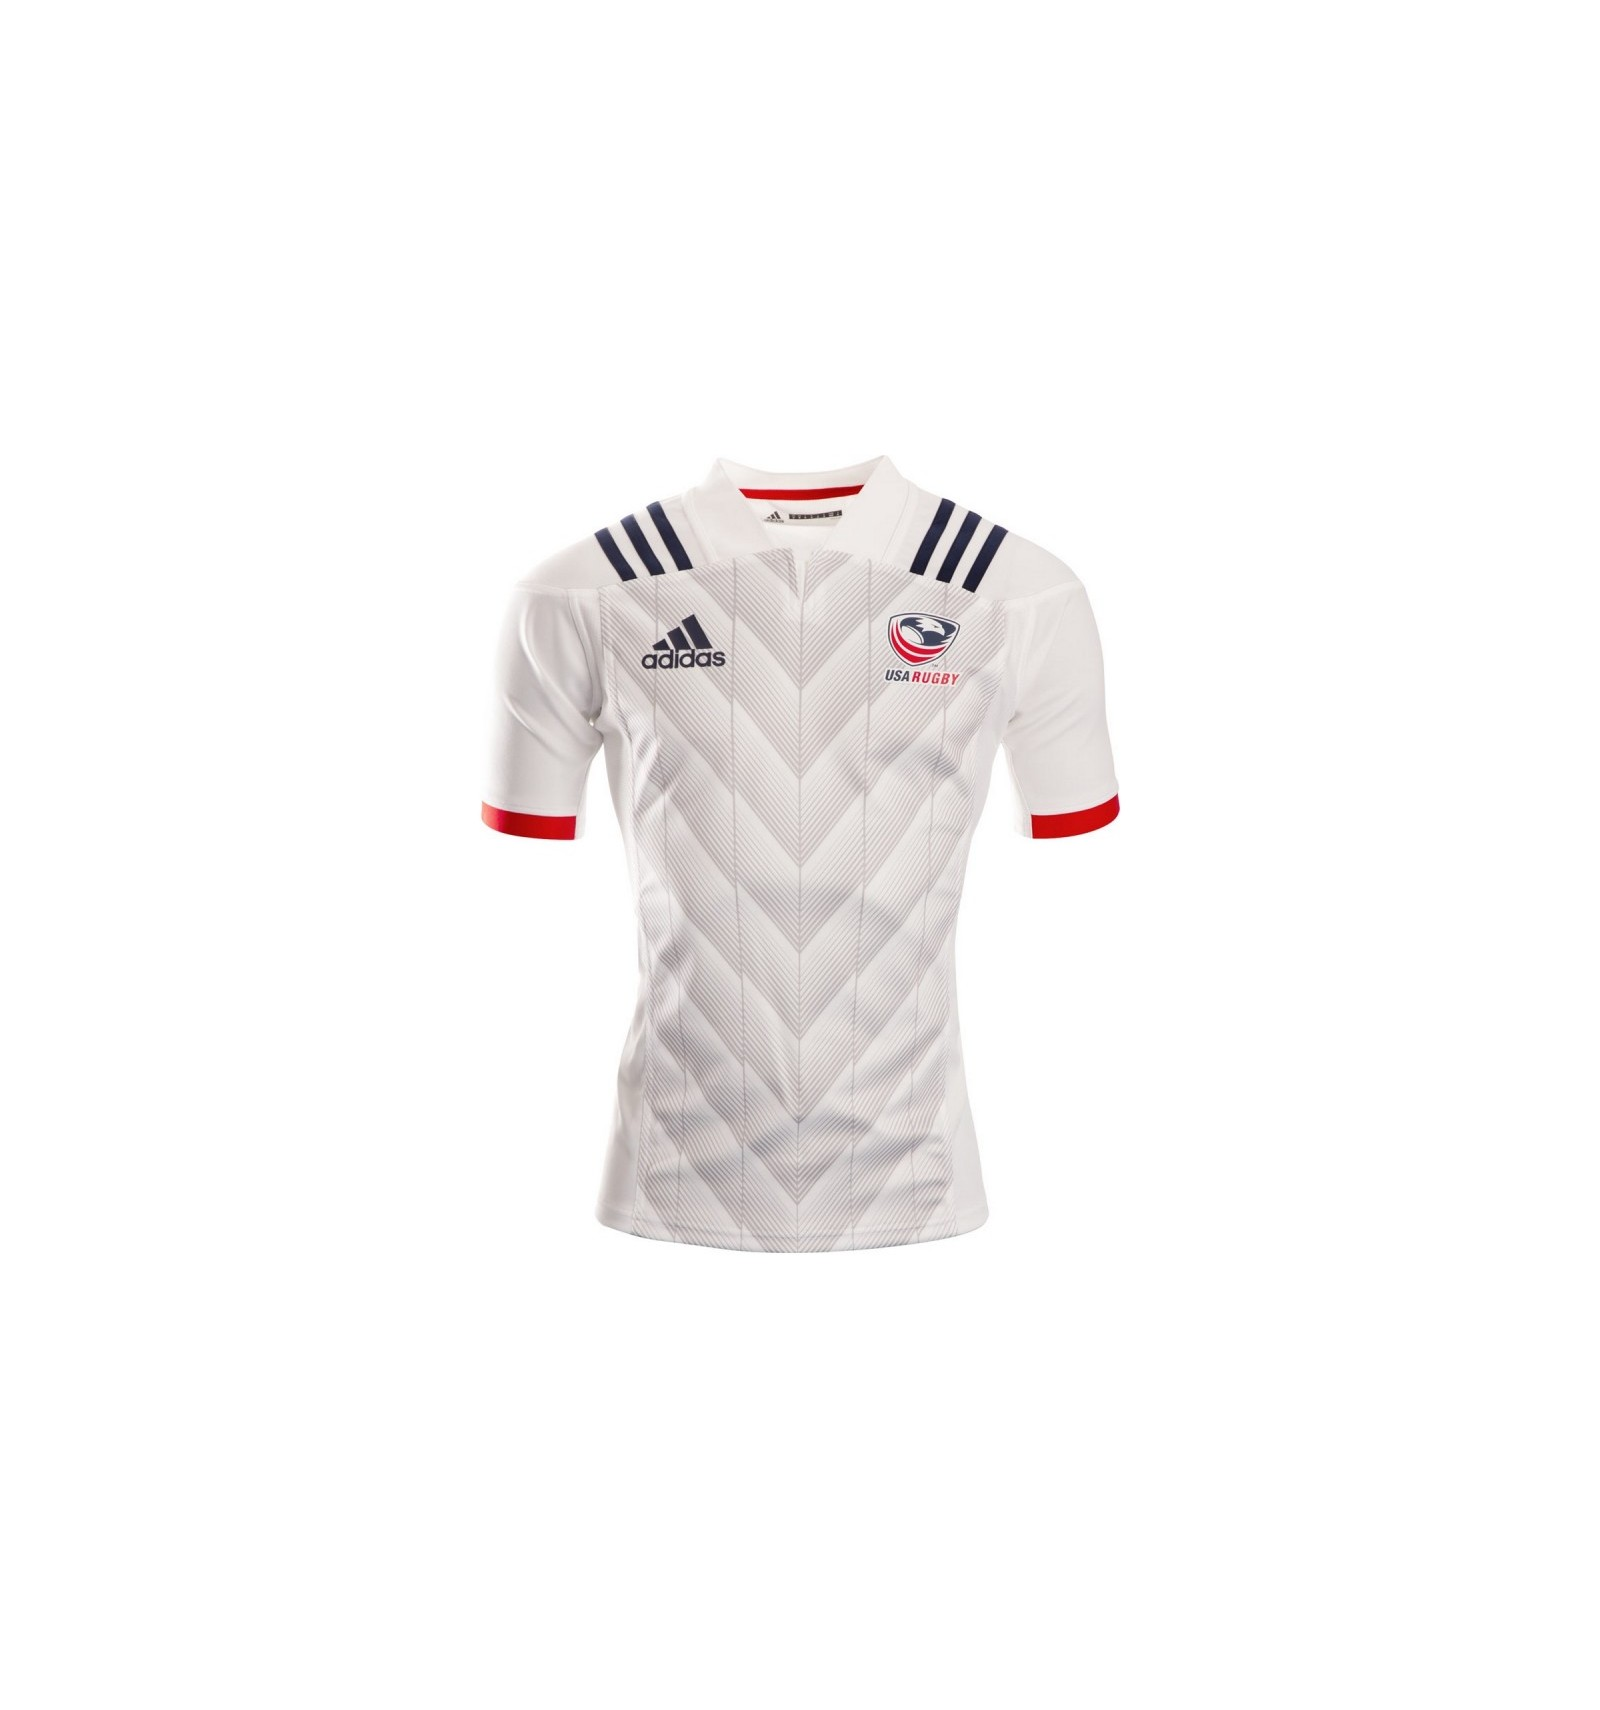 save off 2bf5b bb5c9 Maillot USA 15 domicile 2018-19 Adidas blanc